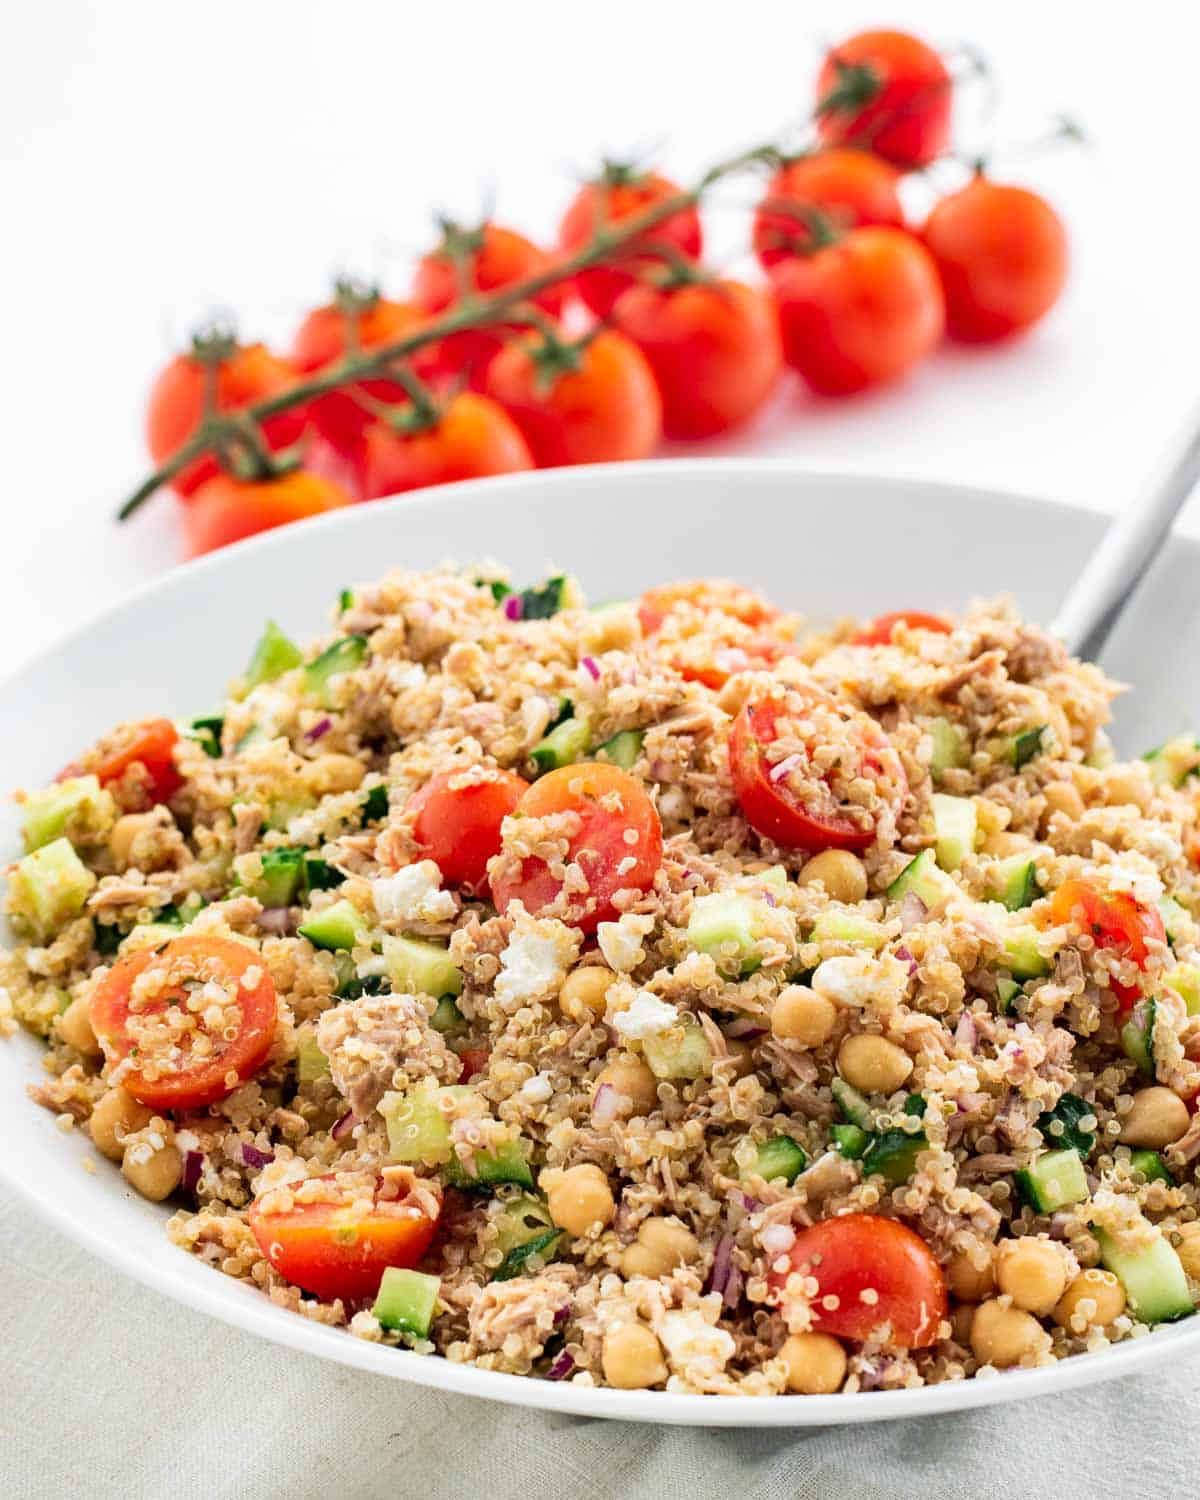 tuna quinoa salad with tomatoes and cucumbers in a white bowl